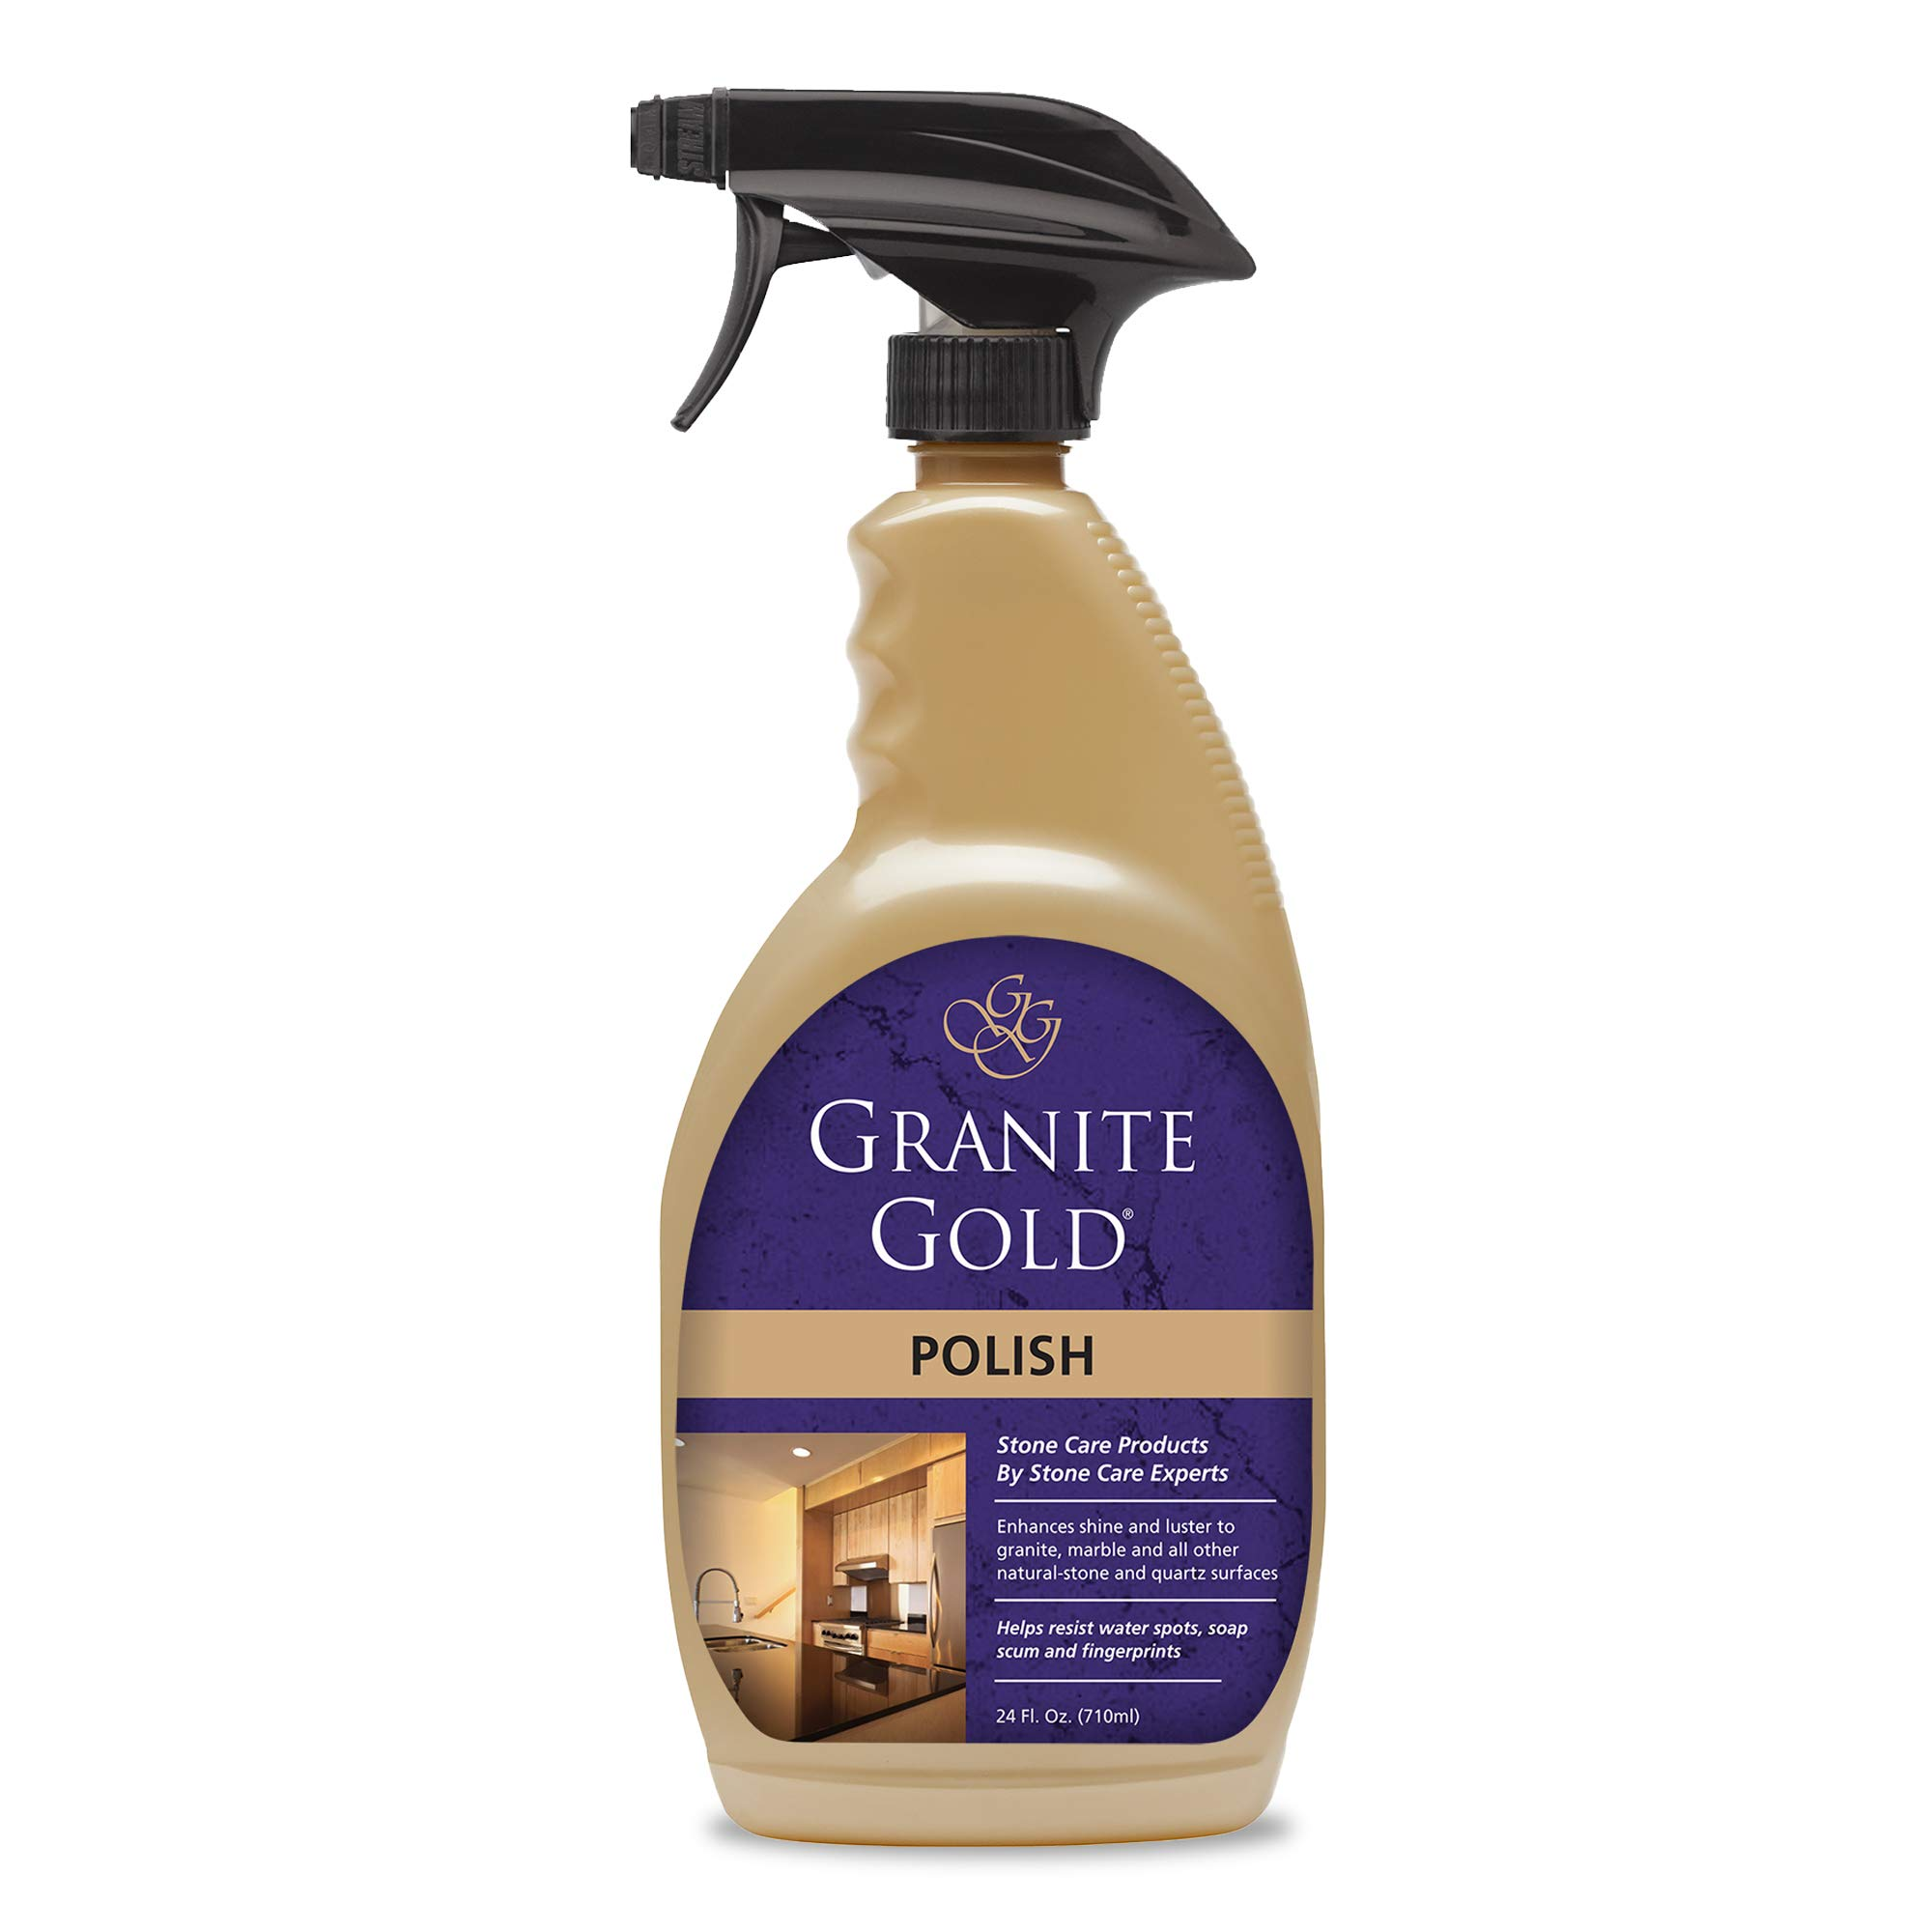 Granite Gold Polish Spray Streak-Free Shine for Granite, Quartz, Marble, Travertine, and Natural Stone Countertops and Floors, Made in the USA, 24 Ounces, Gold